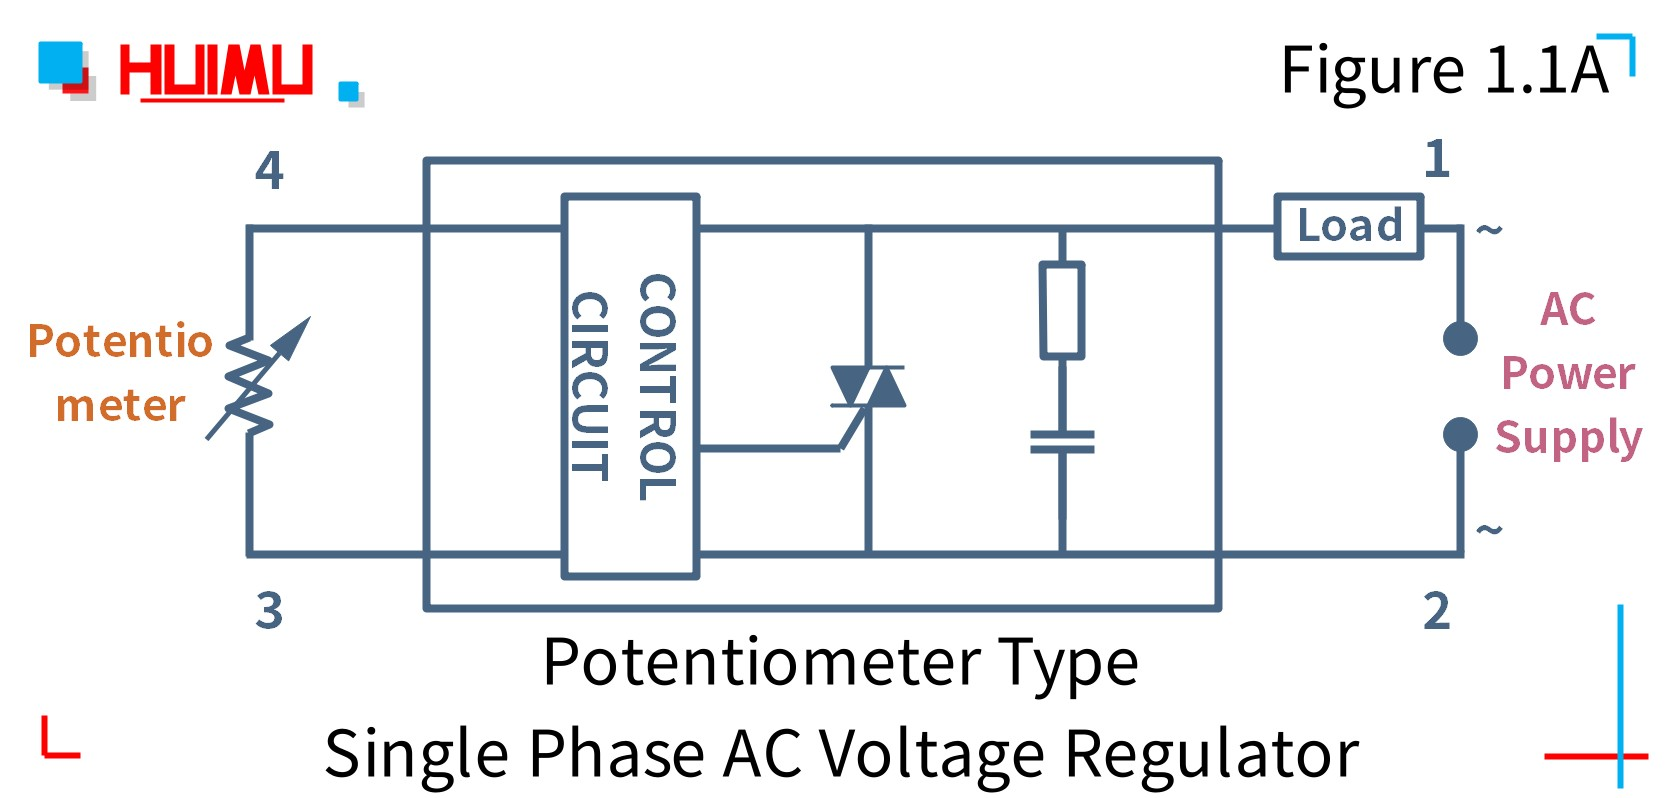 How to wire MGR mager MGR-R40A potentiometer type single phase AC voltage regulator? More detail via www.@huimultd.com